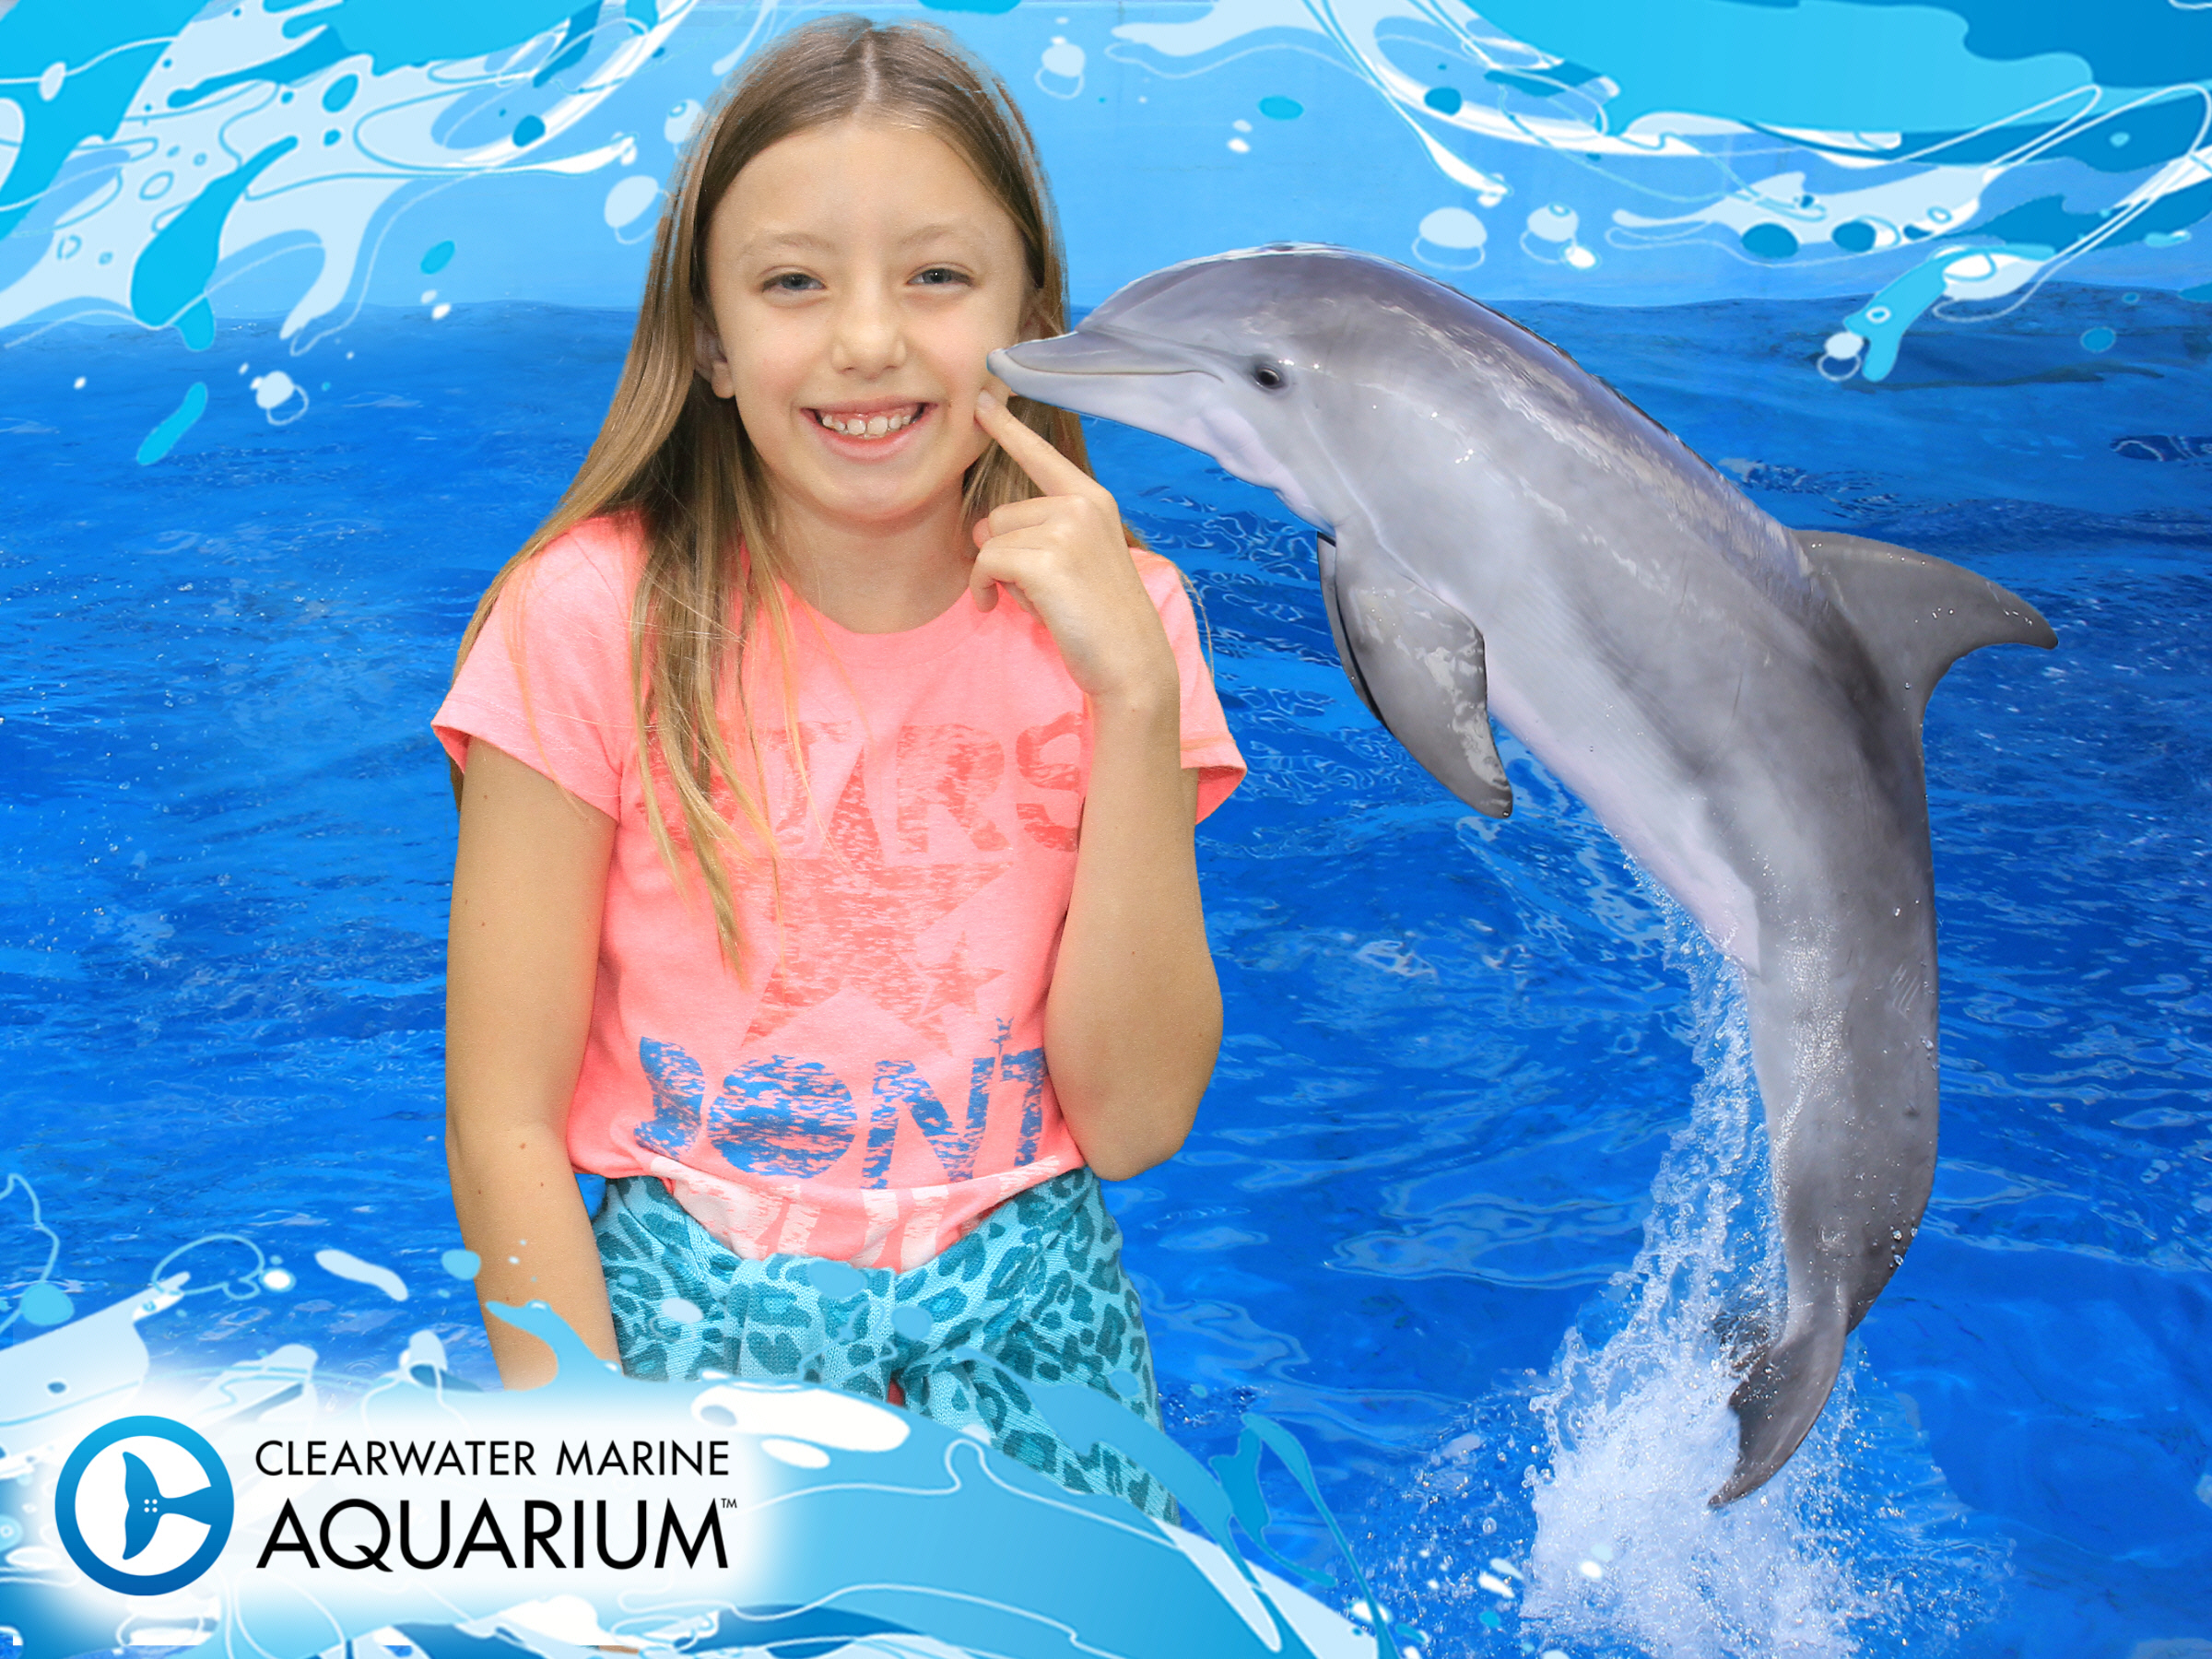 How cute is this creature?  I love the dolphin, too!